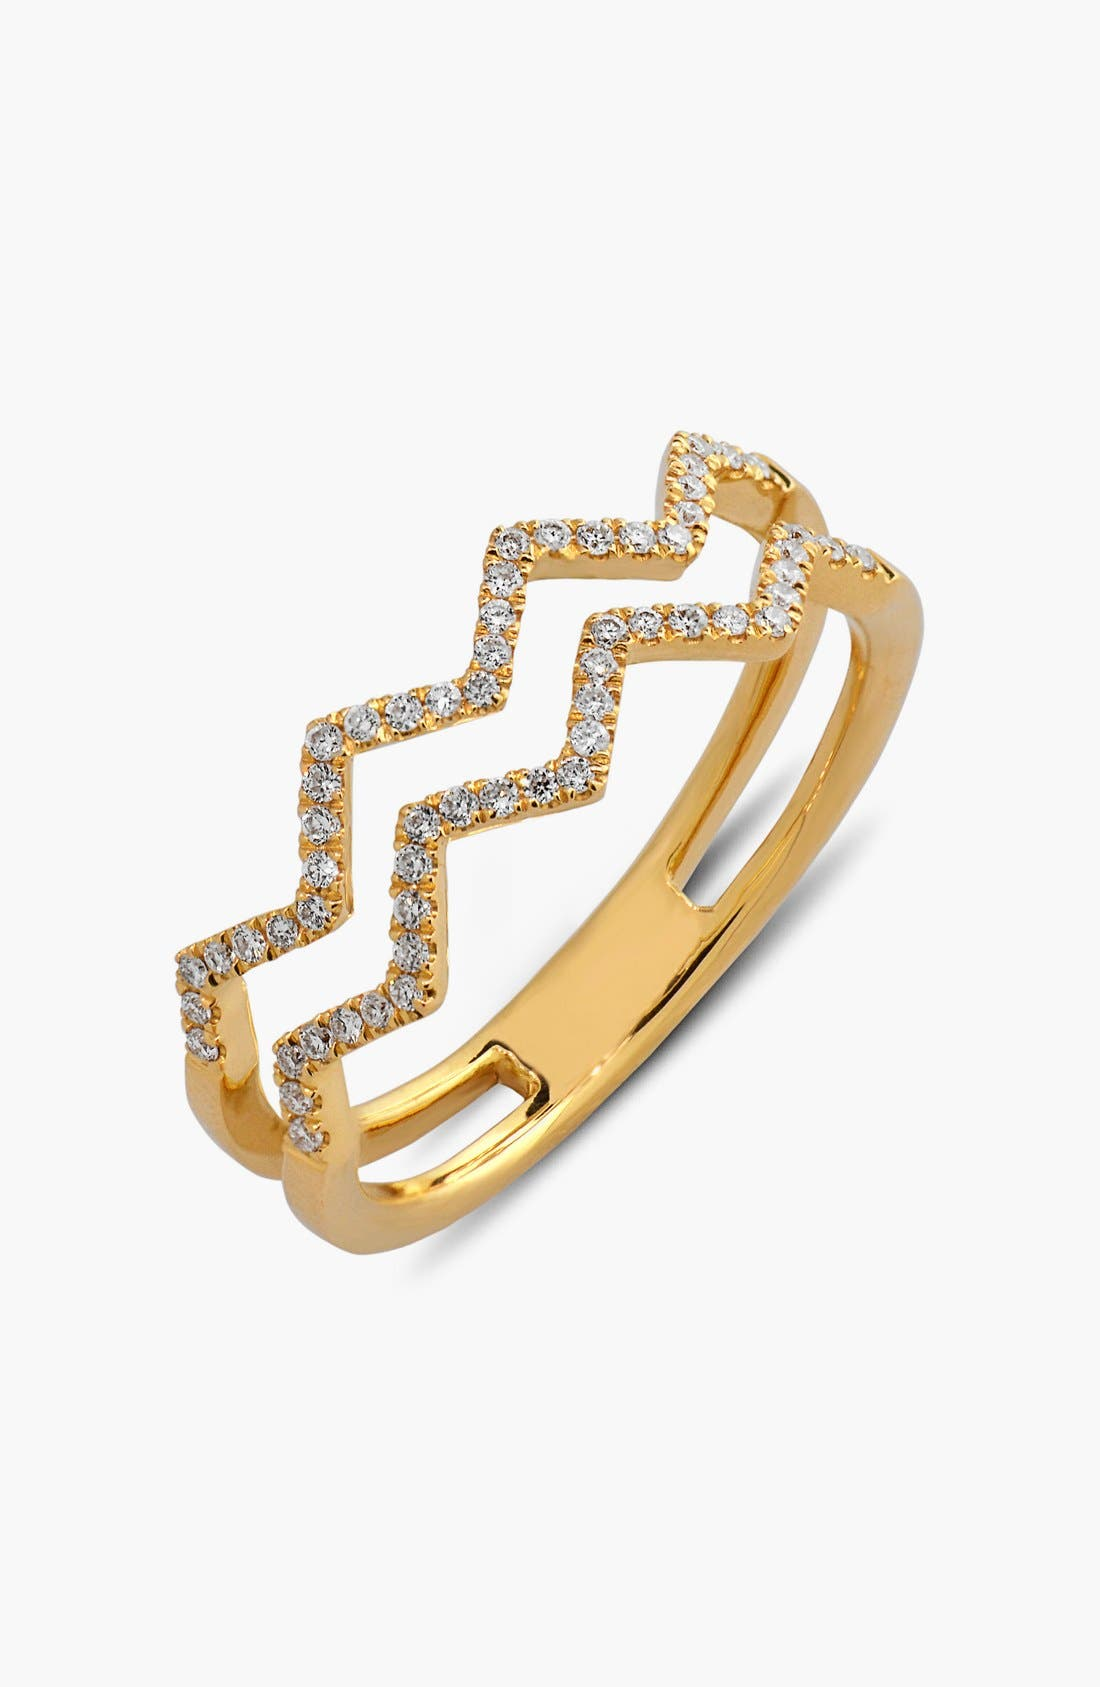 Main Image - Bony Levy 'Prism' 2-Row Diamond Ring (Limited Edition) (Nordstrom Exclusive)